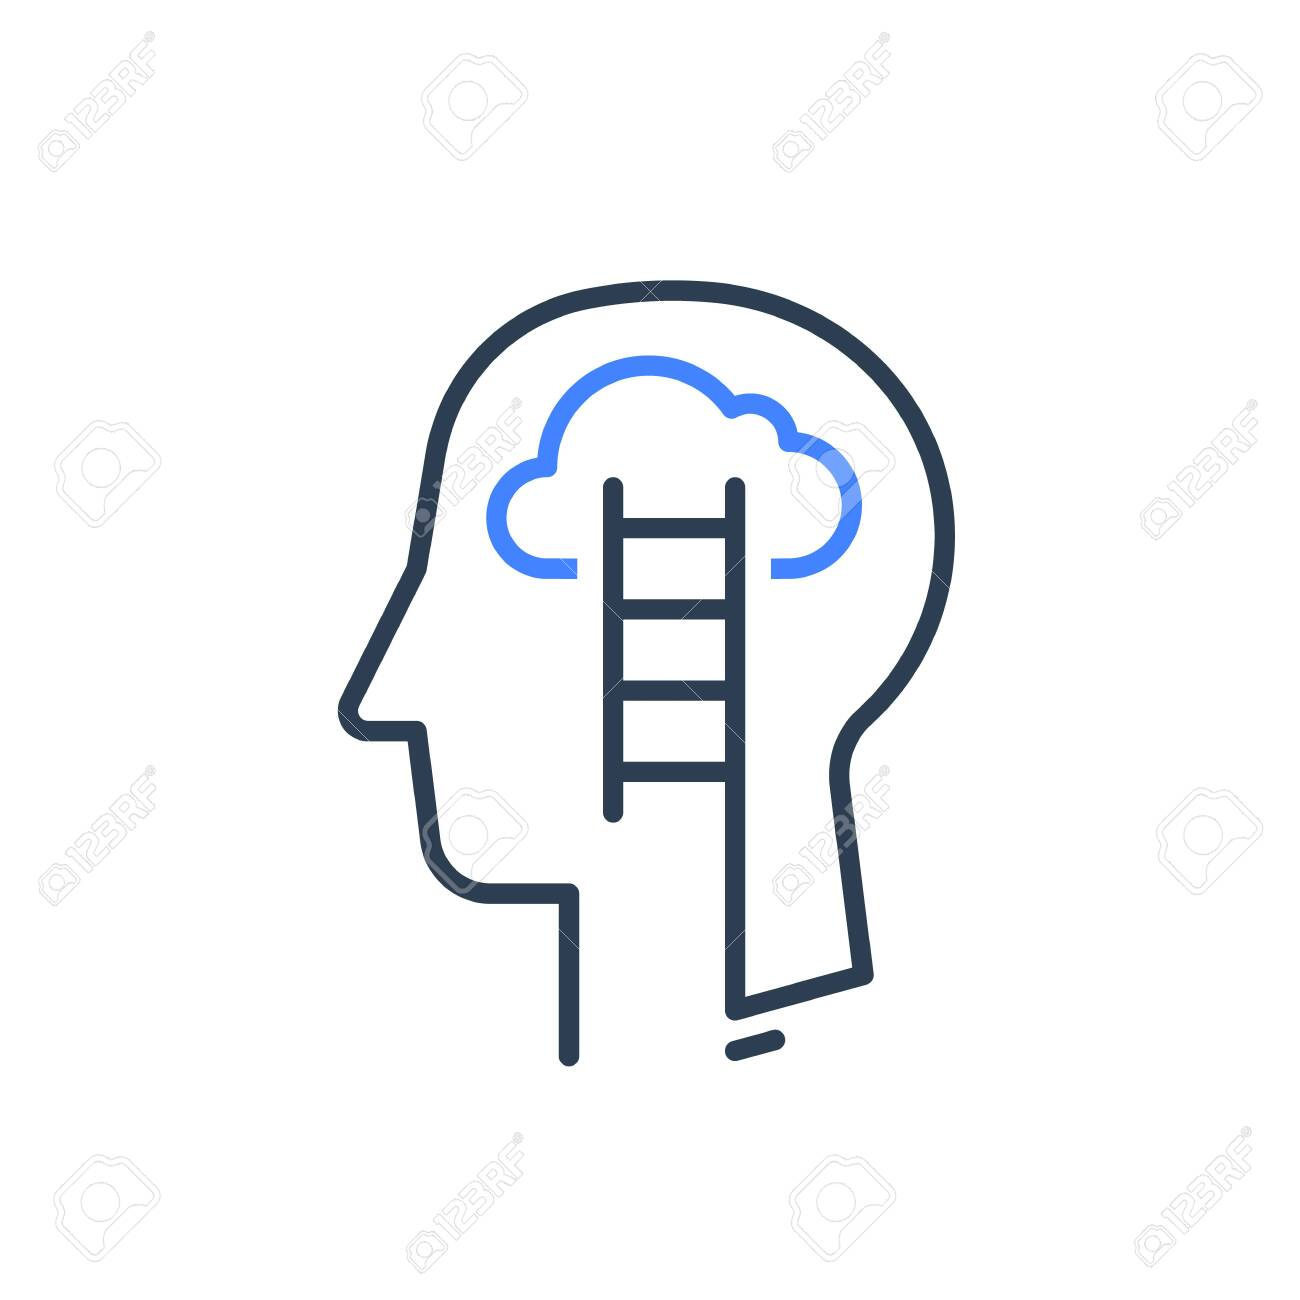 Human head profile and ladder line icon, cognitive psychology or psychiatry concept, growth mindset, self knowledge, soft skill training, emotional intelligence, vector linear design - 133864877